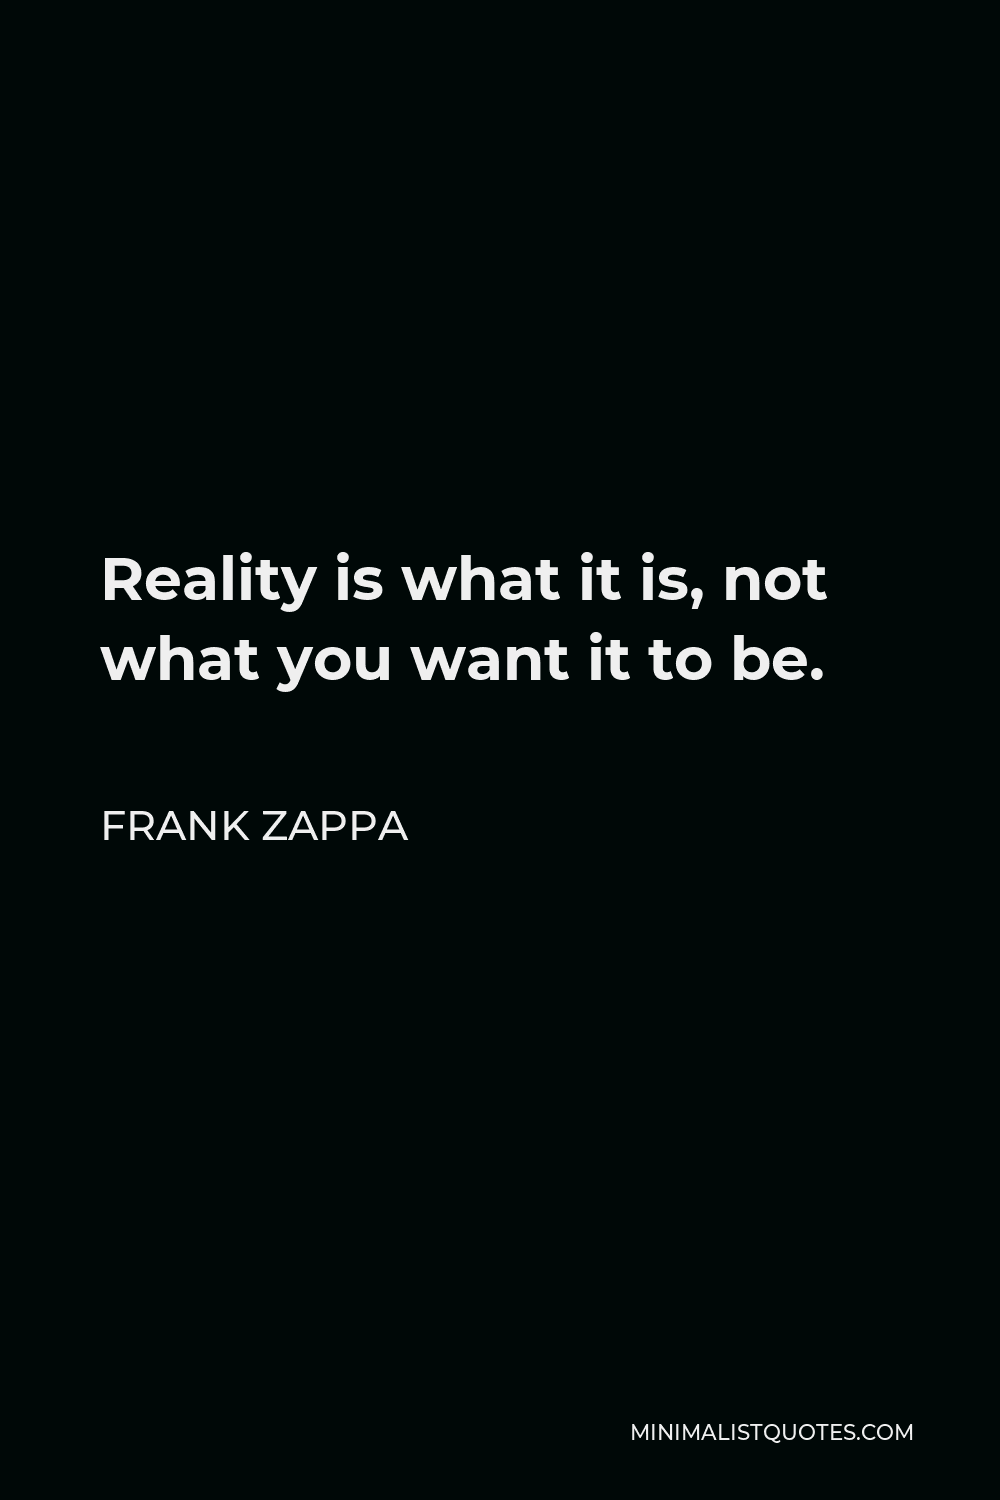 Frank Zappa Quote - Reality is what it is, not what you want it to be.